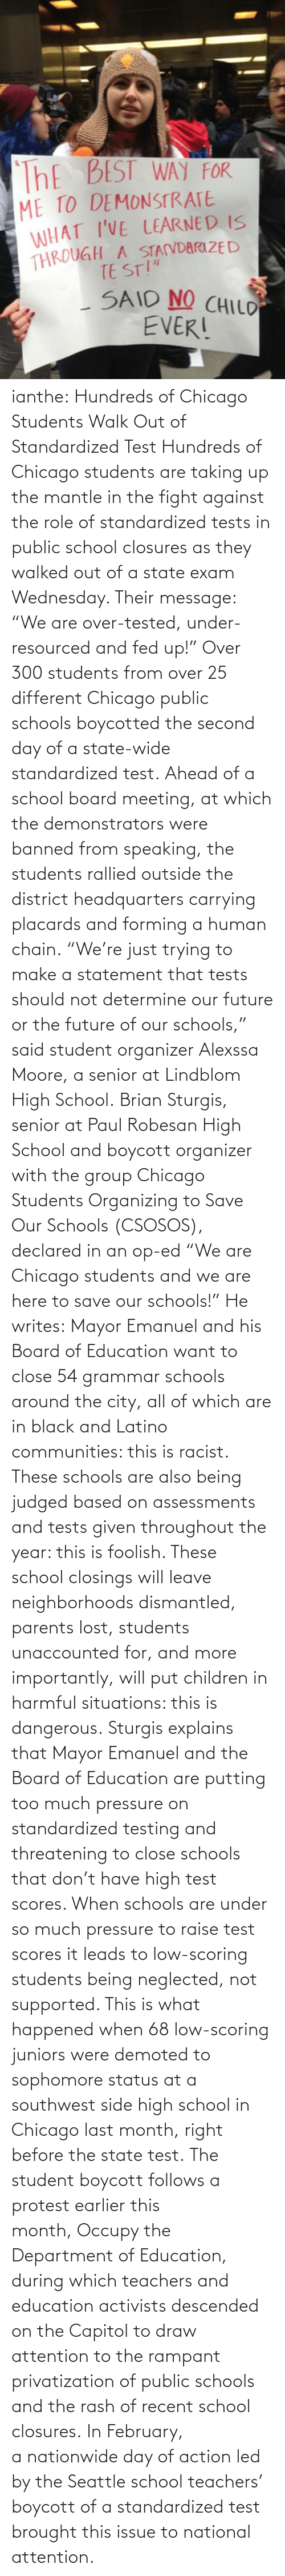 "Emanuel: ThE BEST WAY FOR  ME TO DEMONSTRATE  WHAT I'VE LEARNED IS  THROUGH A STAVDARI ZE D  TE ST!""  SAID NO CHILO  EVER! ianthe:  Hundreds of Chicago Students Walk Out of Standardized Test Hundreds of Chicago students are taking up the mantle in the fight against the role of standardized tests in public school closures as they walked out of a state exam Wednesday. Their message: ""We are over-tested, under-resourced and fed up!"" Over 300 students from over 25 different Chicago public schools boycotted the second day of a state-wide standardized test. Ahead of a school board meeting, at which the demonstrators were banned from speaking, the students rallied outside the district headquarters carrying placards and forming a human chain. ""We're just trying to make a statement that tests should not determine our future or the future of our schools,"" said student organizer Alexssa Moore, a senior at Lindblom High School. Brian Sturgis, senior at Paul Robesan High School and boycott organizer with the group Chicago Students Organizing to Save Our Schools (CSOSOS), declared in an op-ed ""We are Chicago students and we are here to save our schools!"" He writes:  Mayor Emanuel and his Board of Education want to close 54 grammar schools around the city, all of which are in black and Latino communities: this is racist. These schools are also being judged based on assessments and tests given throughout the year: this is foolish. These school closings will leave neighborhoods dismantled, parents lost, students unaccounted for, and more importantly, will put children in harmful situations: this is dangerous.  Sturgis explains that Mayor Emanuel and the Board of Education  are putting too much pressure on standardized testing and threatening to close schools that don't have high test scores. When schools are under so much pressure to raise test scores it leads to low-scoring students being neglected, not supported. This is what happened when 68 low-scoring juniors were demoted to sophomore status at a southwest side high school in Chicago last month, right before the state test.  The student boycott follows a protest earlier this month, Occupy the Department of Education, during which teachers and education activists descended on the Capitol to draw attention to the rampant privatization of public schools and the rash of recent school closures. In February, a nationwide day of action led by the Seattle school teachers' boycott of a standardized test brought this issue to national attention."